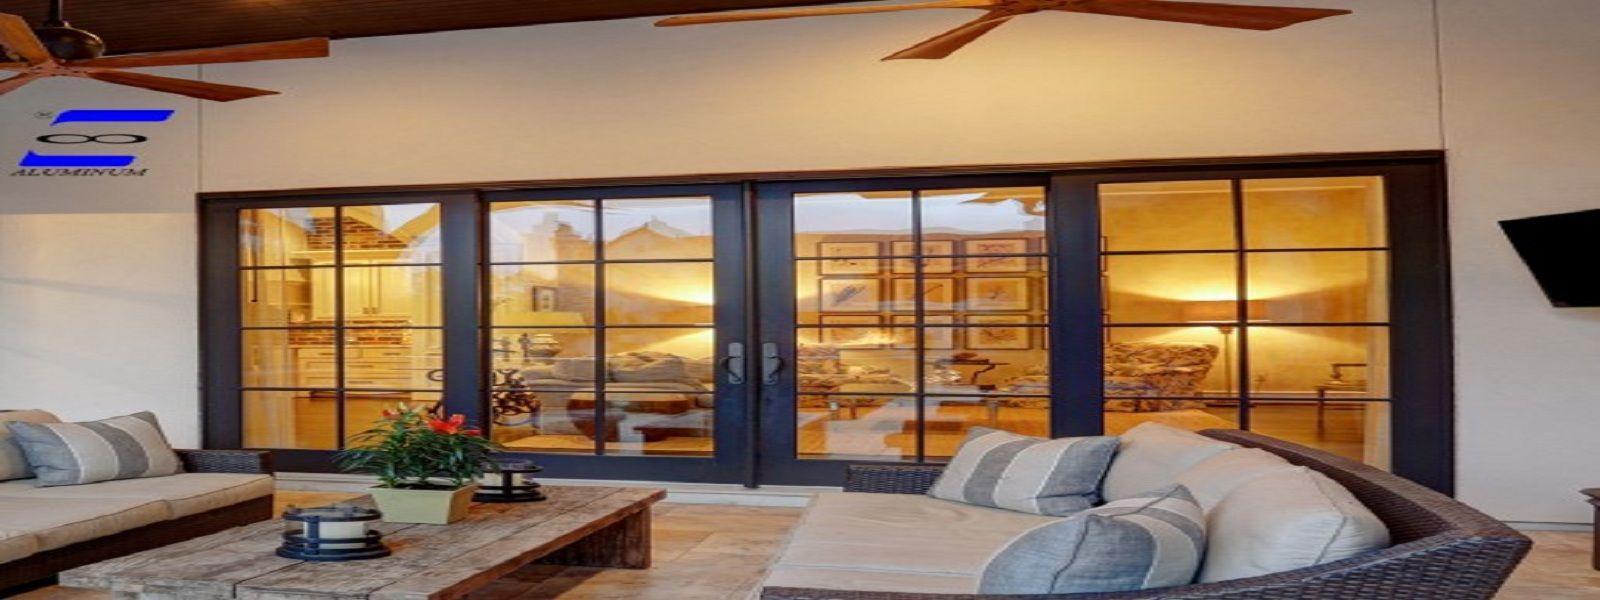 What Are The Benefits Of Installing Aluminium Windows Doors In Your Home Sliding Doors Exterior Glass Door Aluminium Windows And Doors